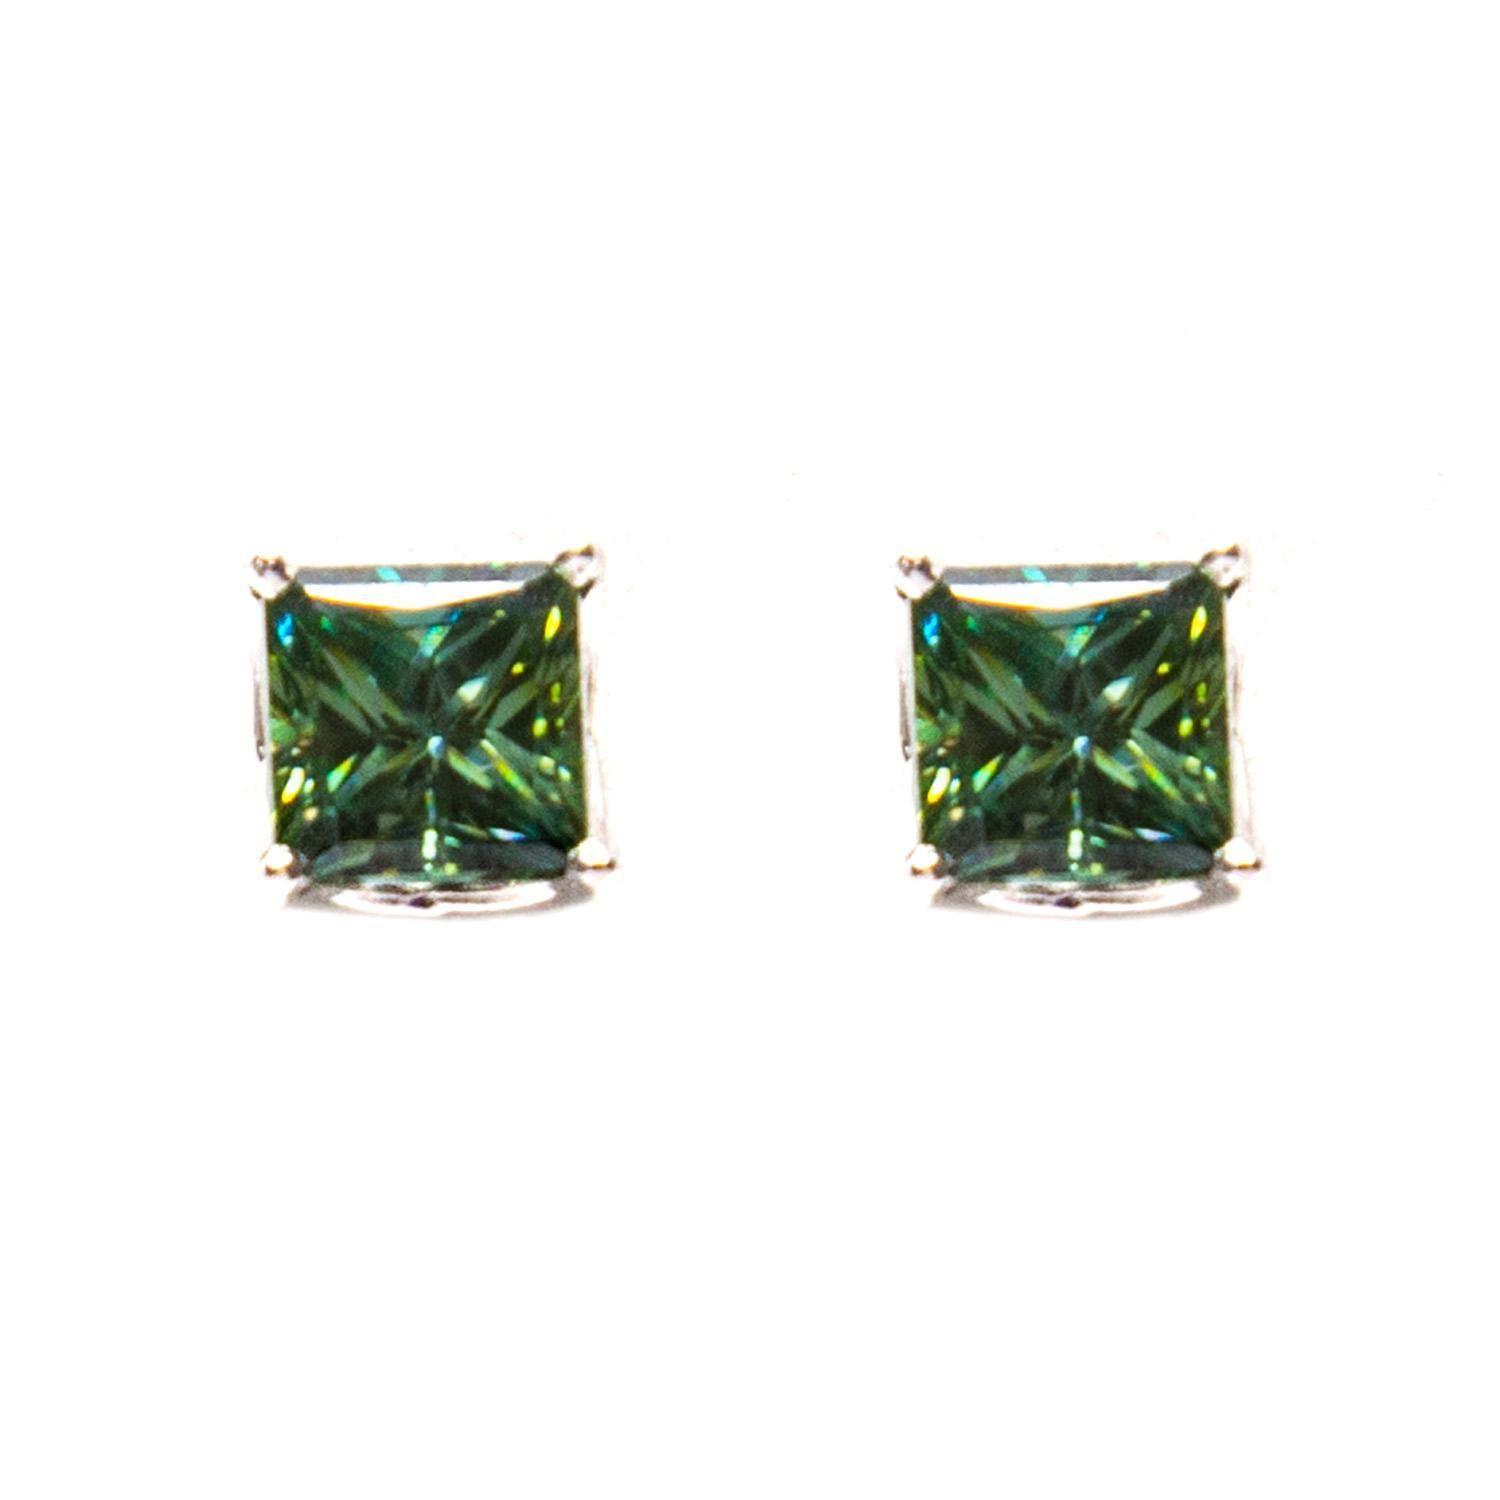 gold classic charles tgw stud brilliant colvard pin square moissanite earrings